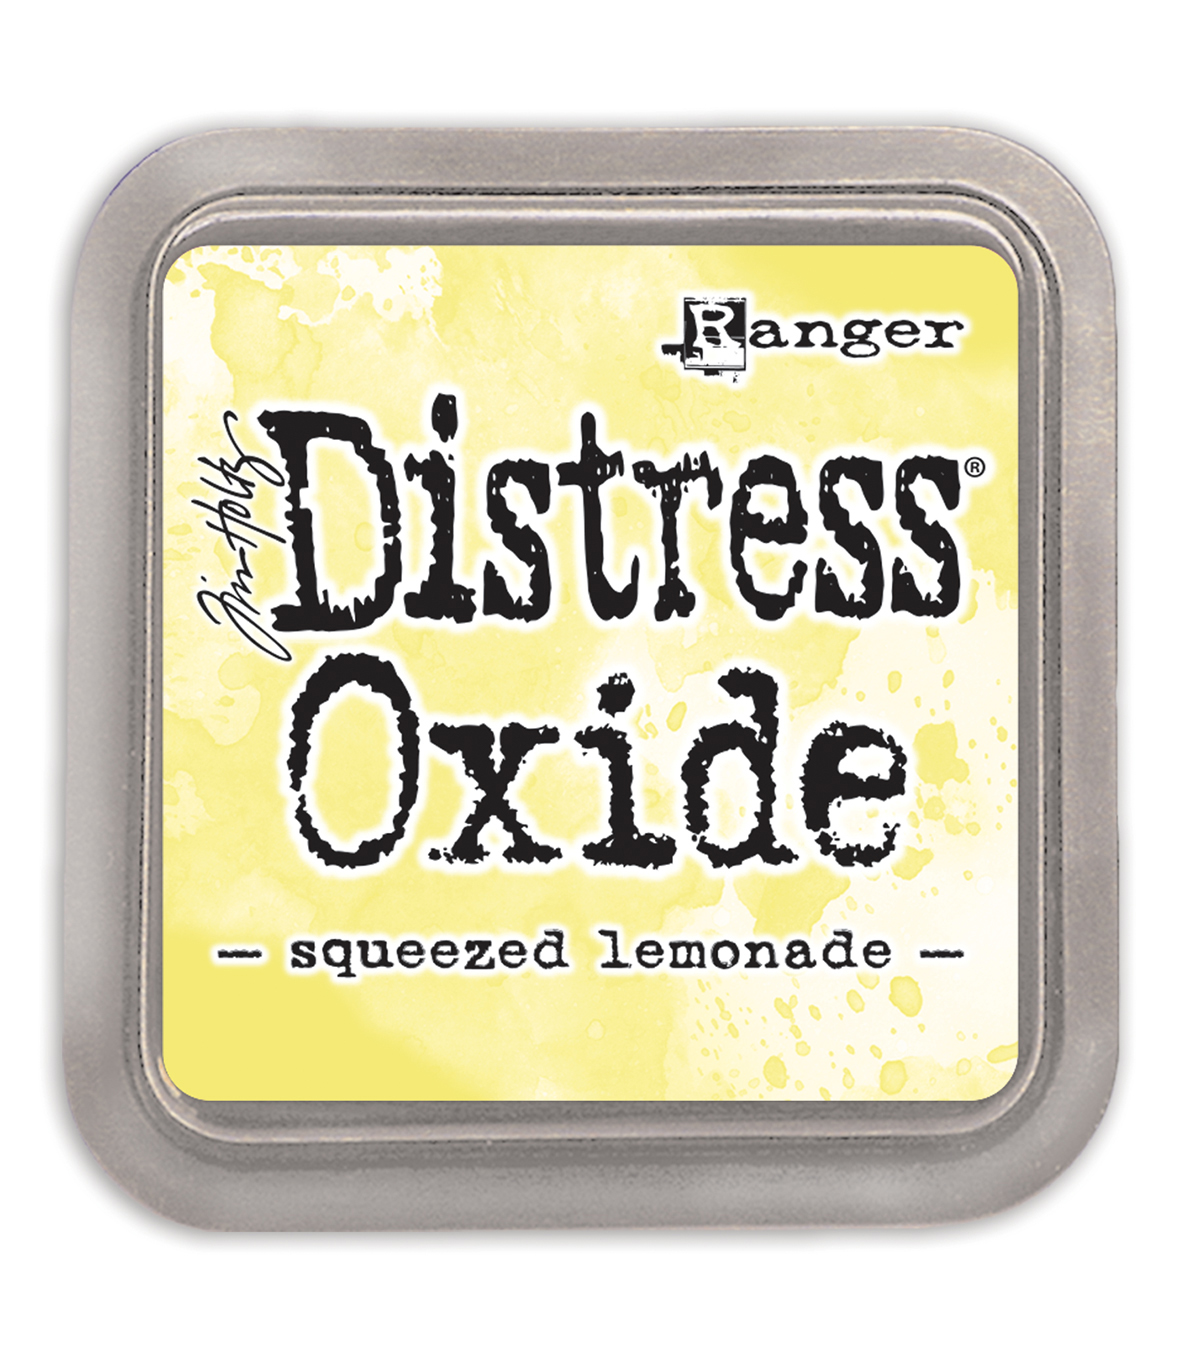 Tim Holtz Distress Oxide Ink Pad, Squeezed Lemonade